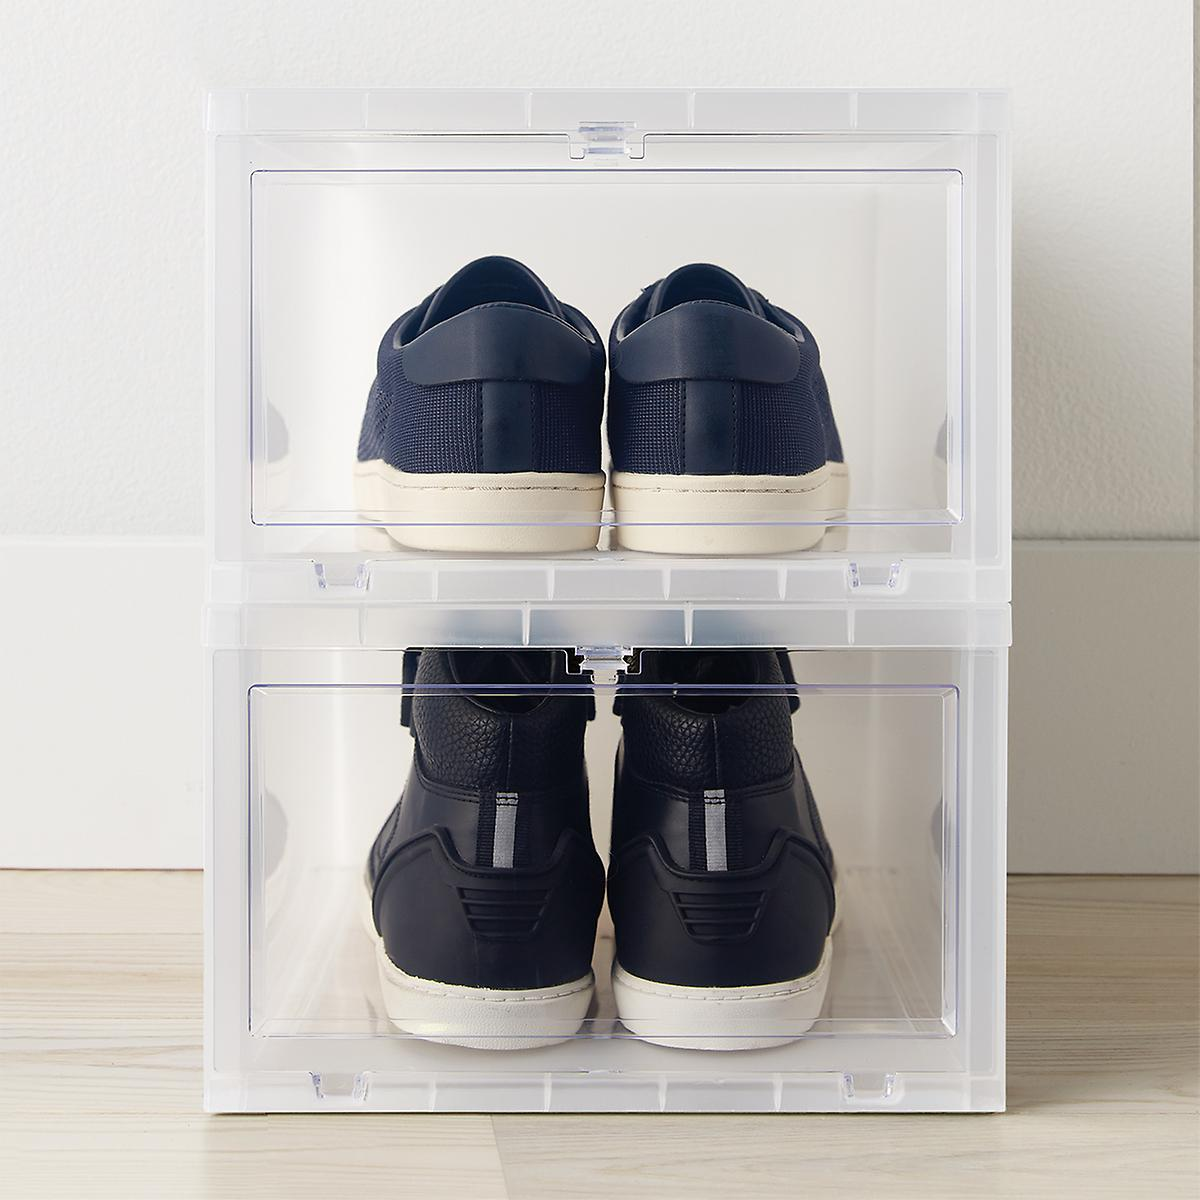 Large Drop-Front Shoe Box